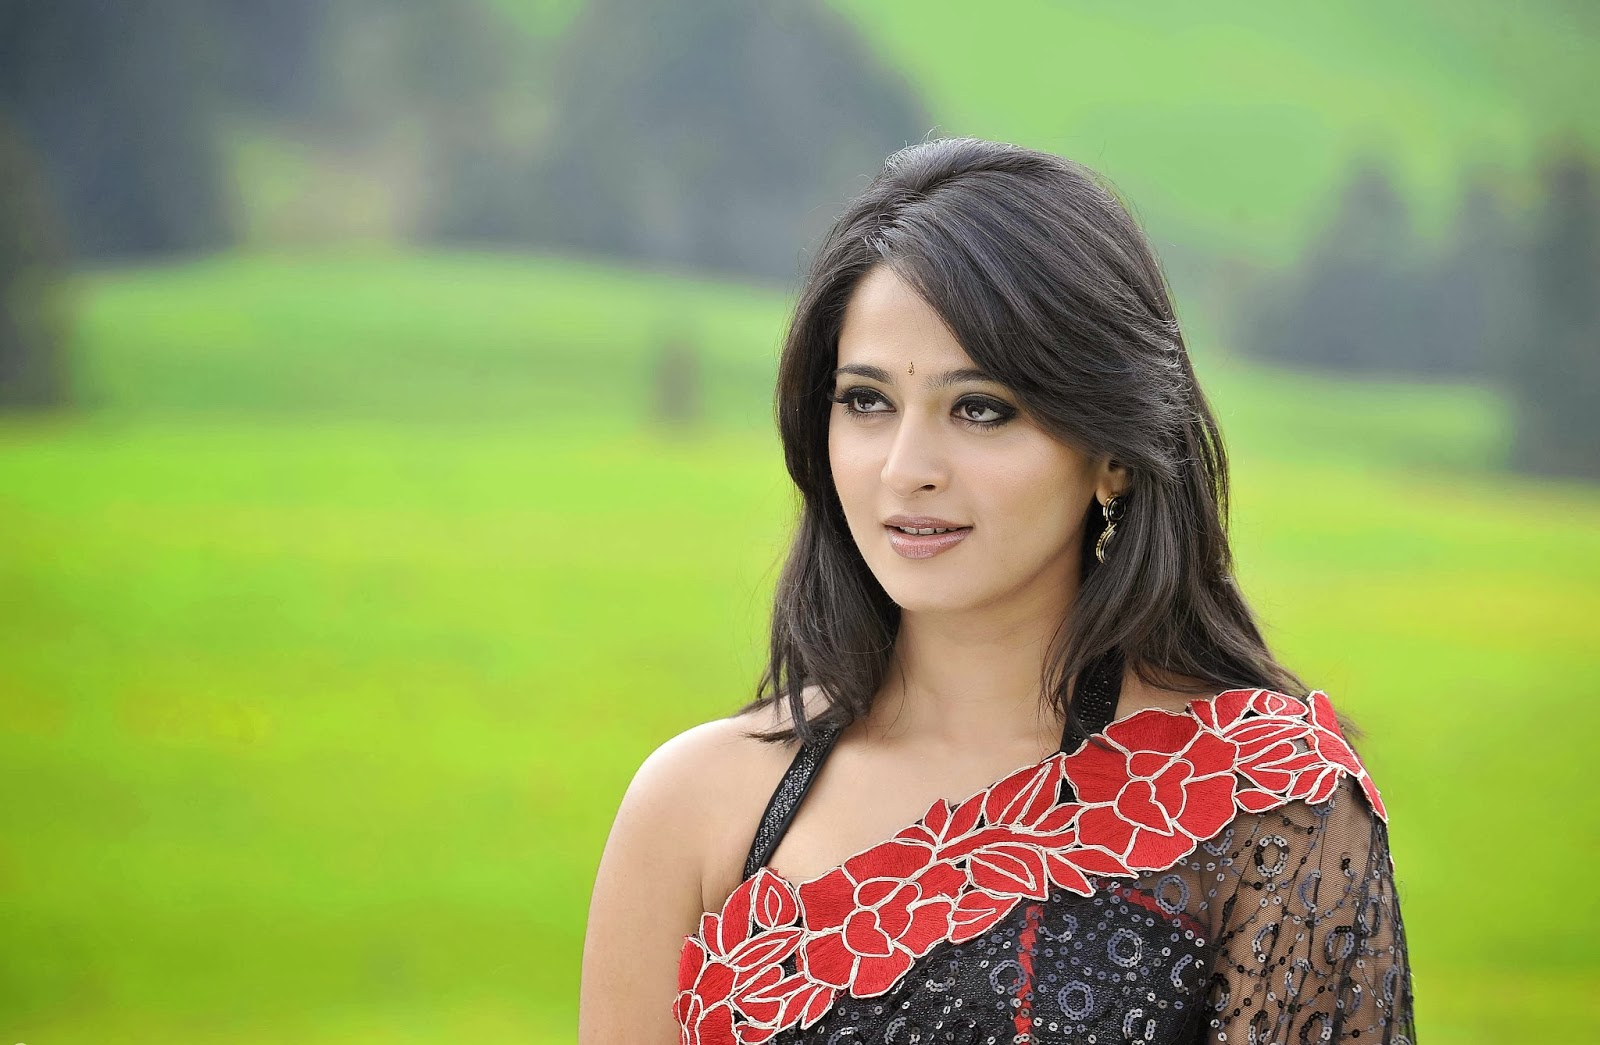 Anushka Shetty All Upcoming Movies List 2016, 2017 With Release Dates